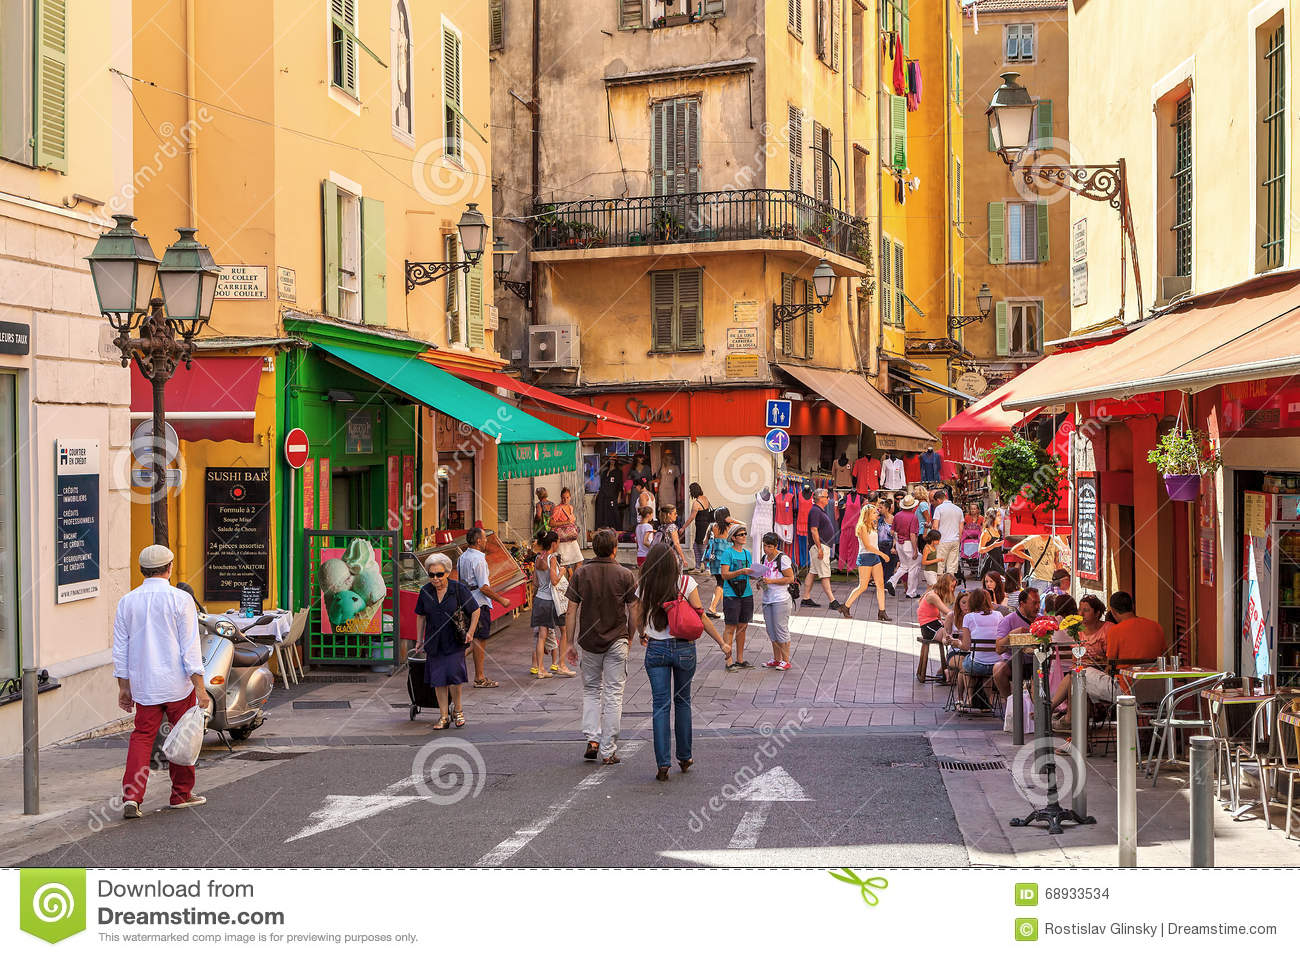 People in Old City of Nice, France.